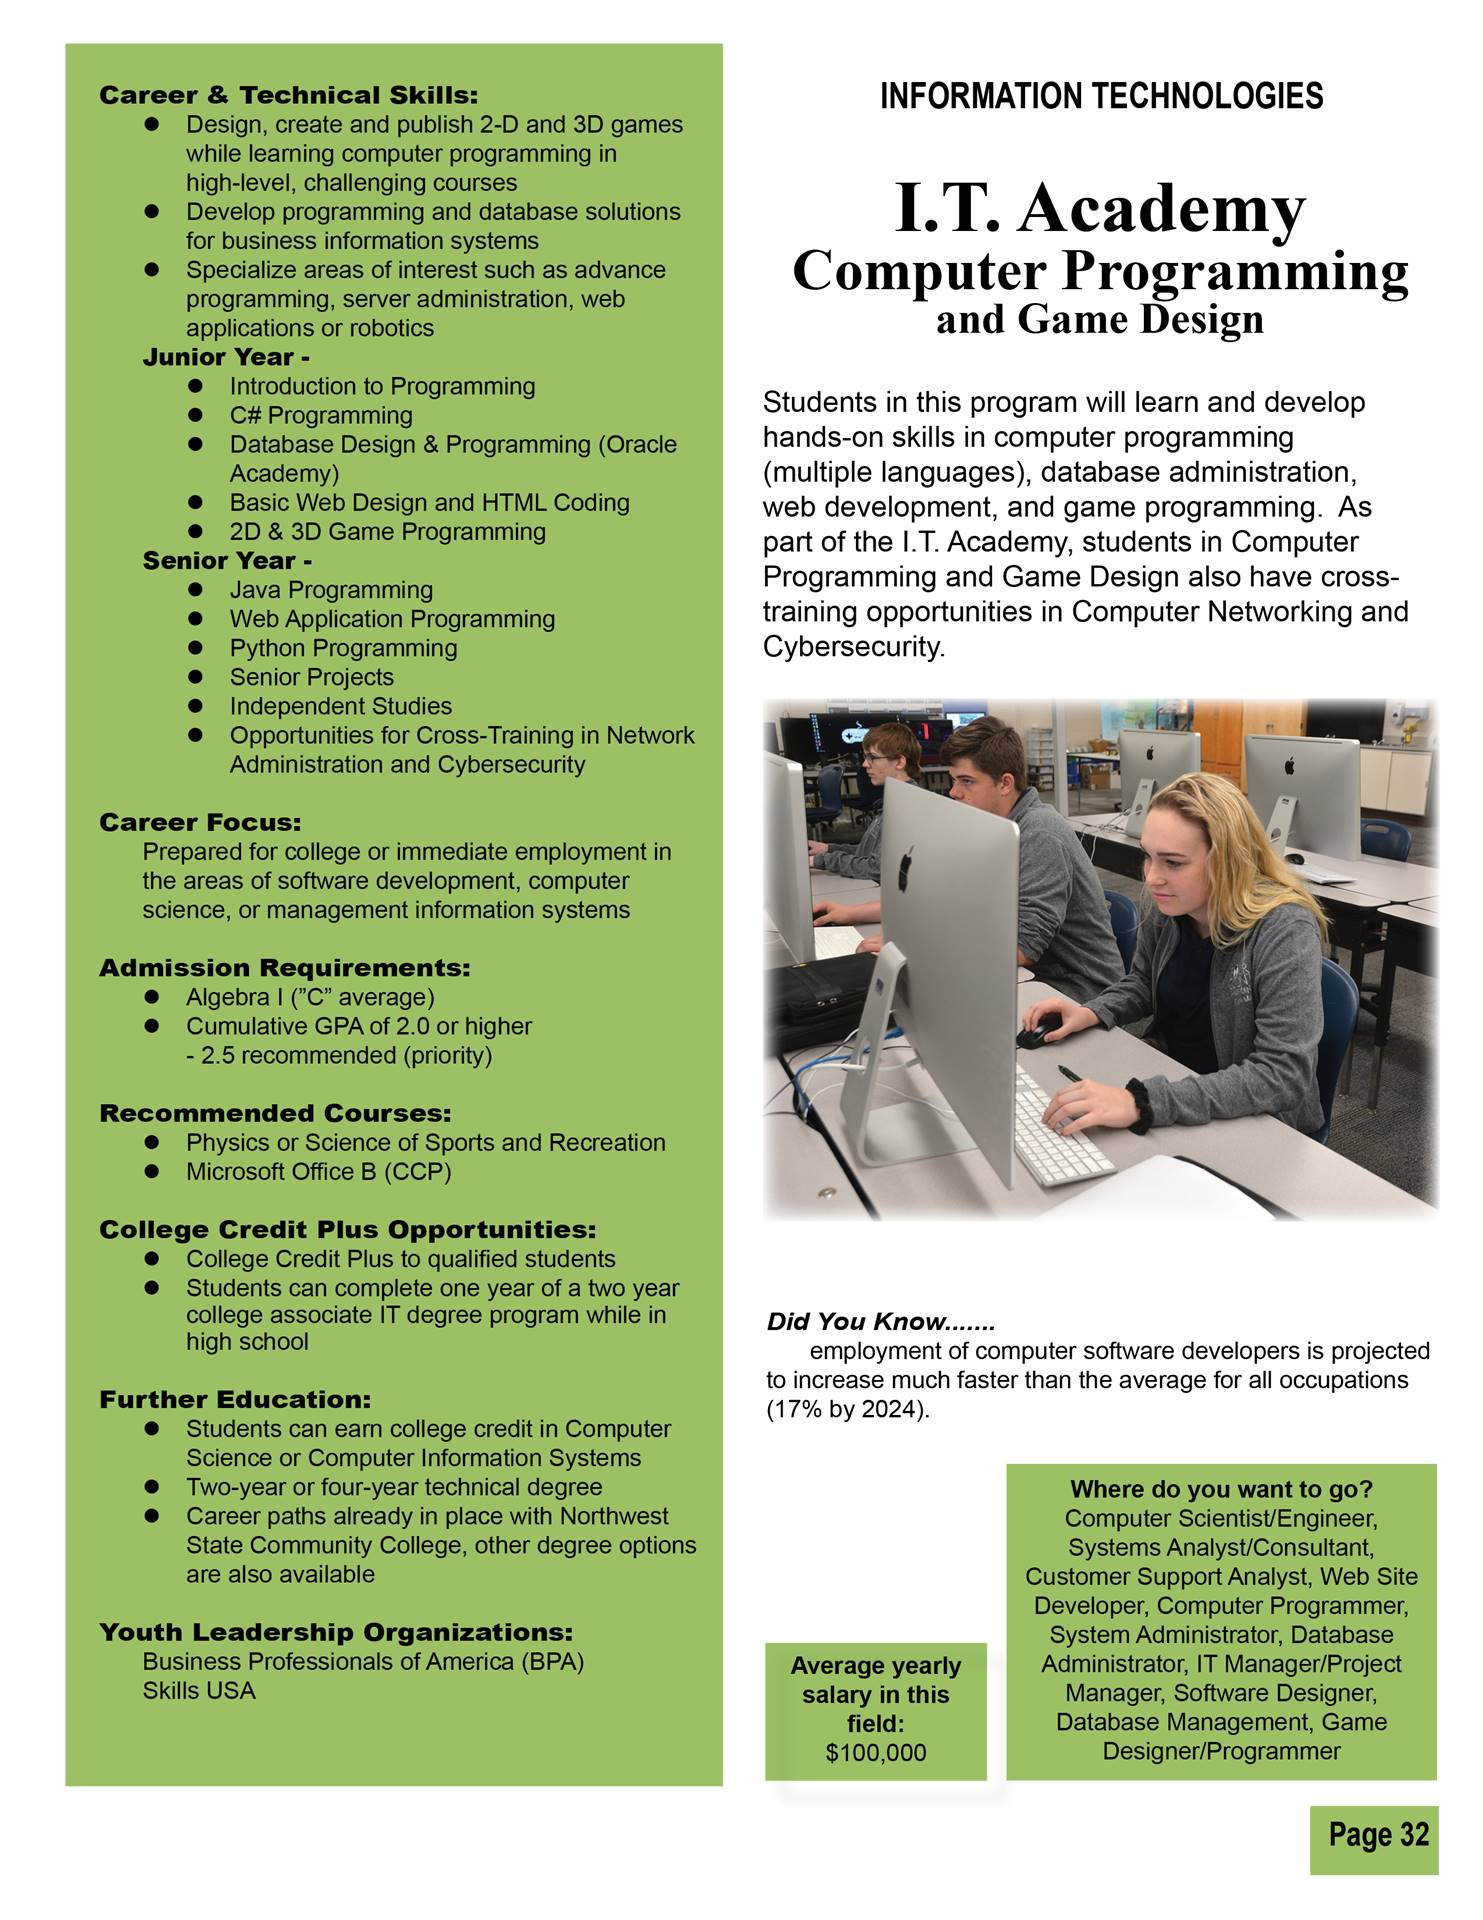 I.T. Academy - Computer Programming and Game Design